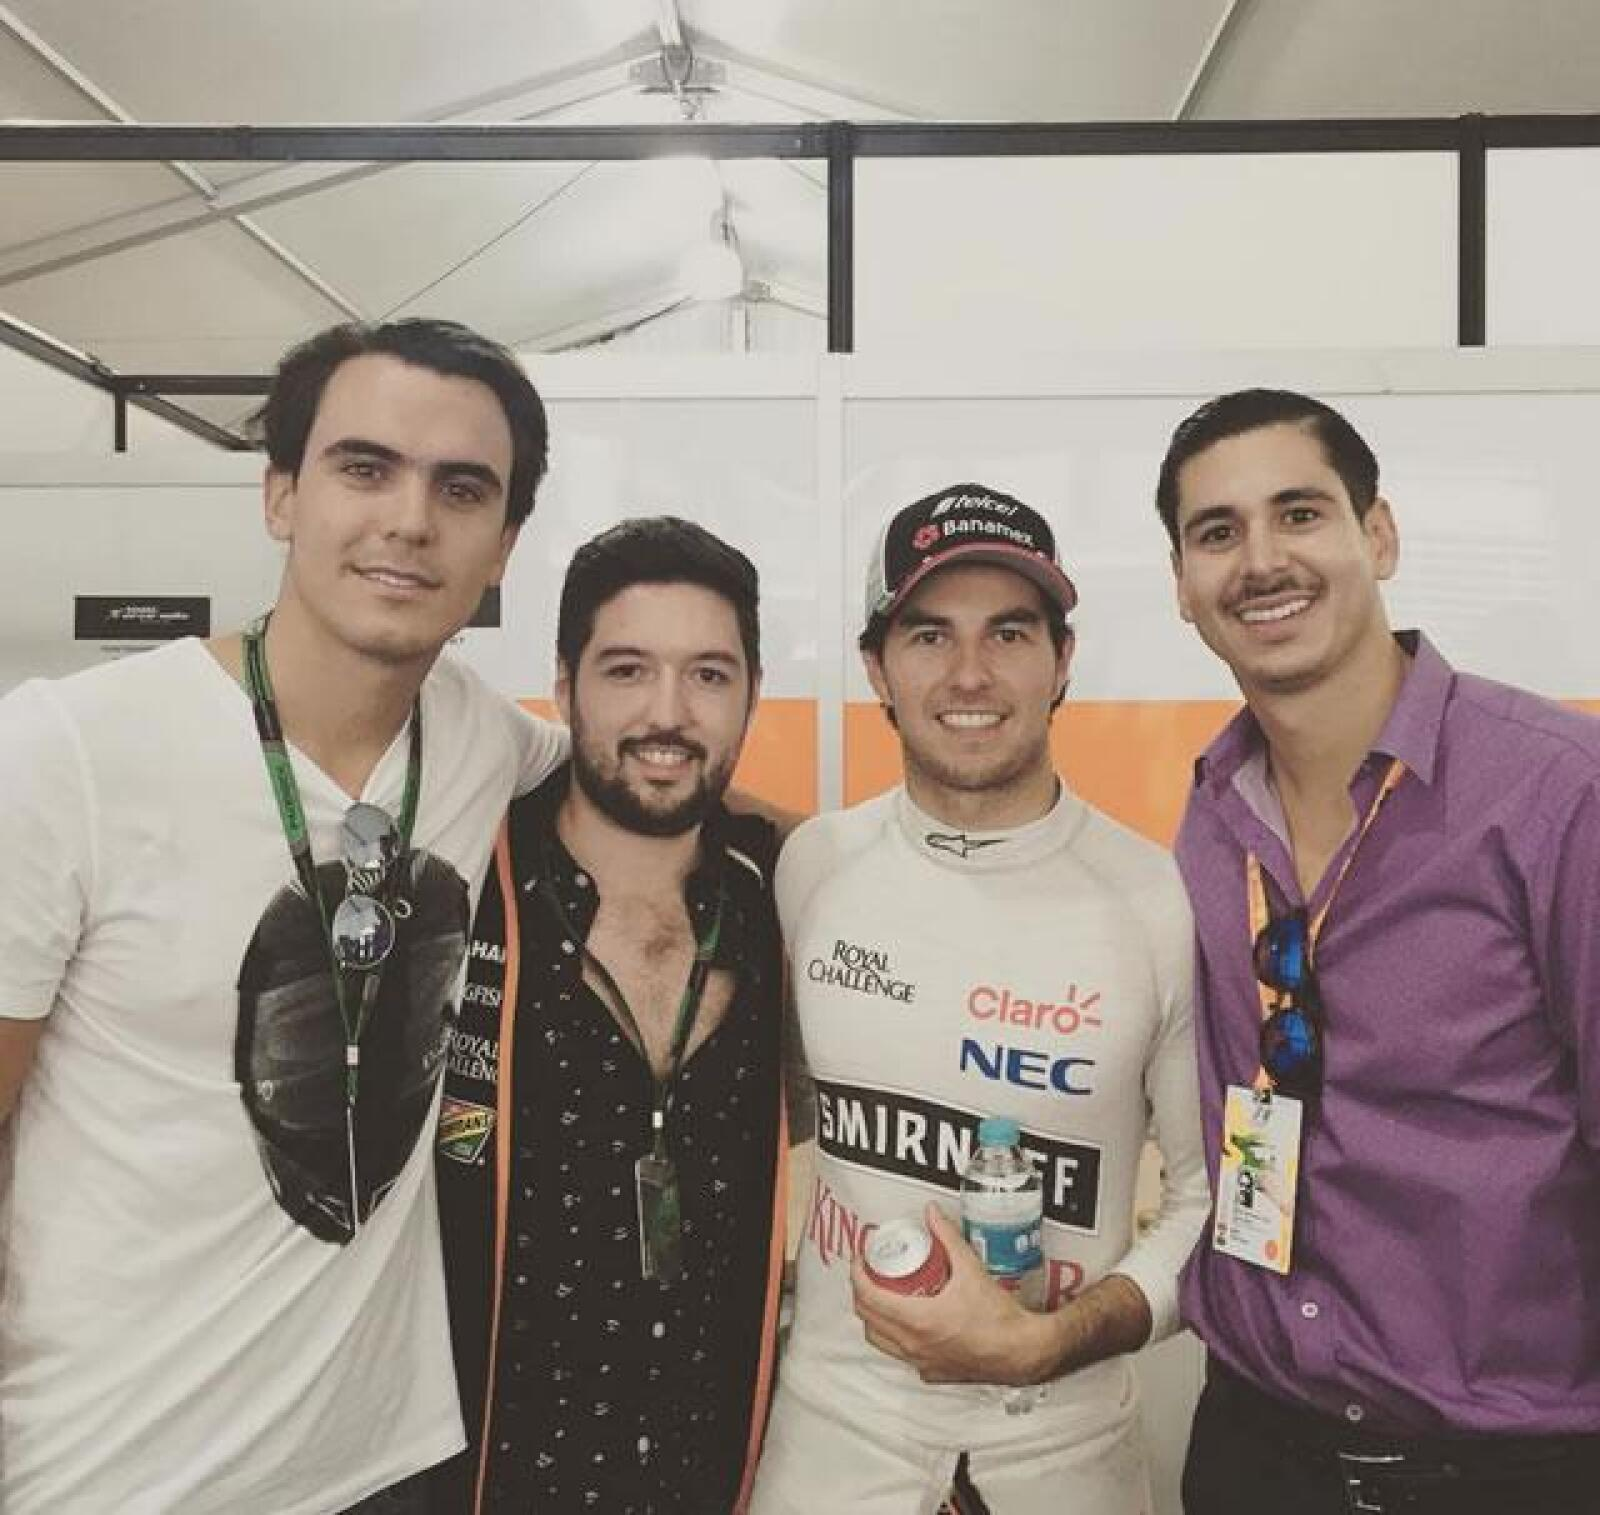 Carlos Guarro, Heladio Nun?ez , Checo Pe?rez y Carlos Arroyo